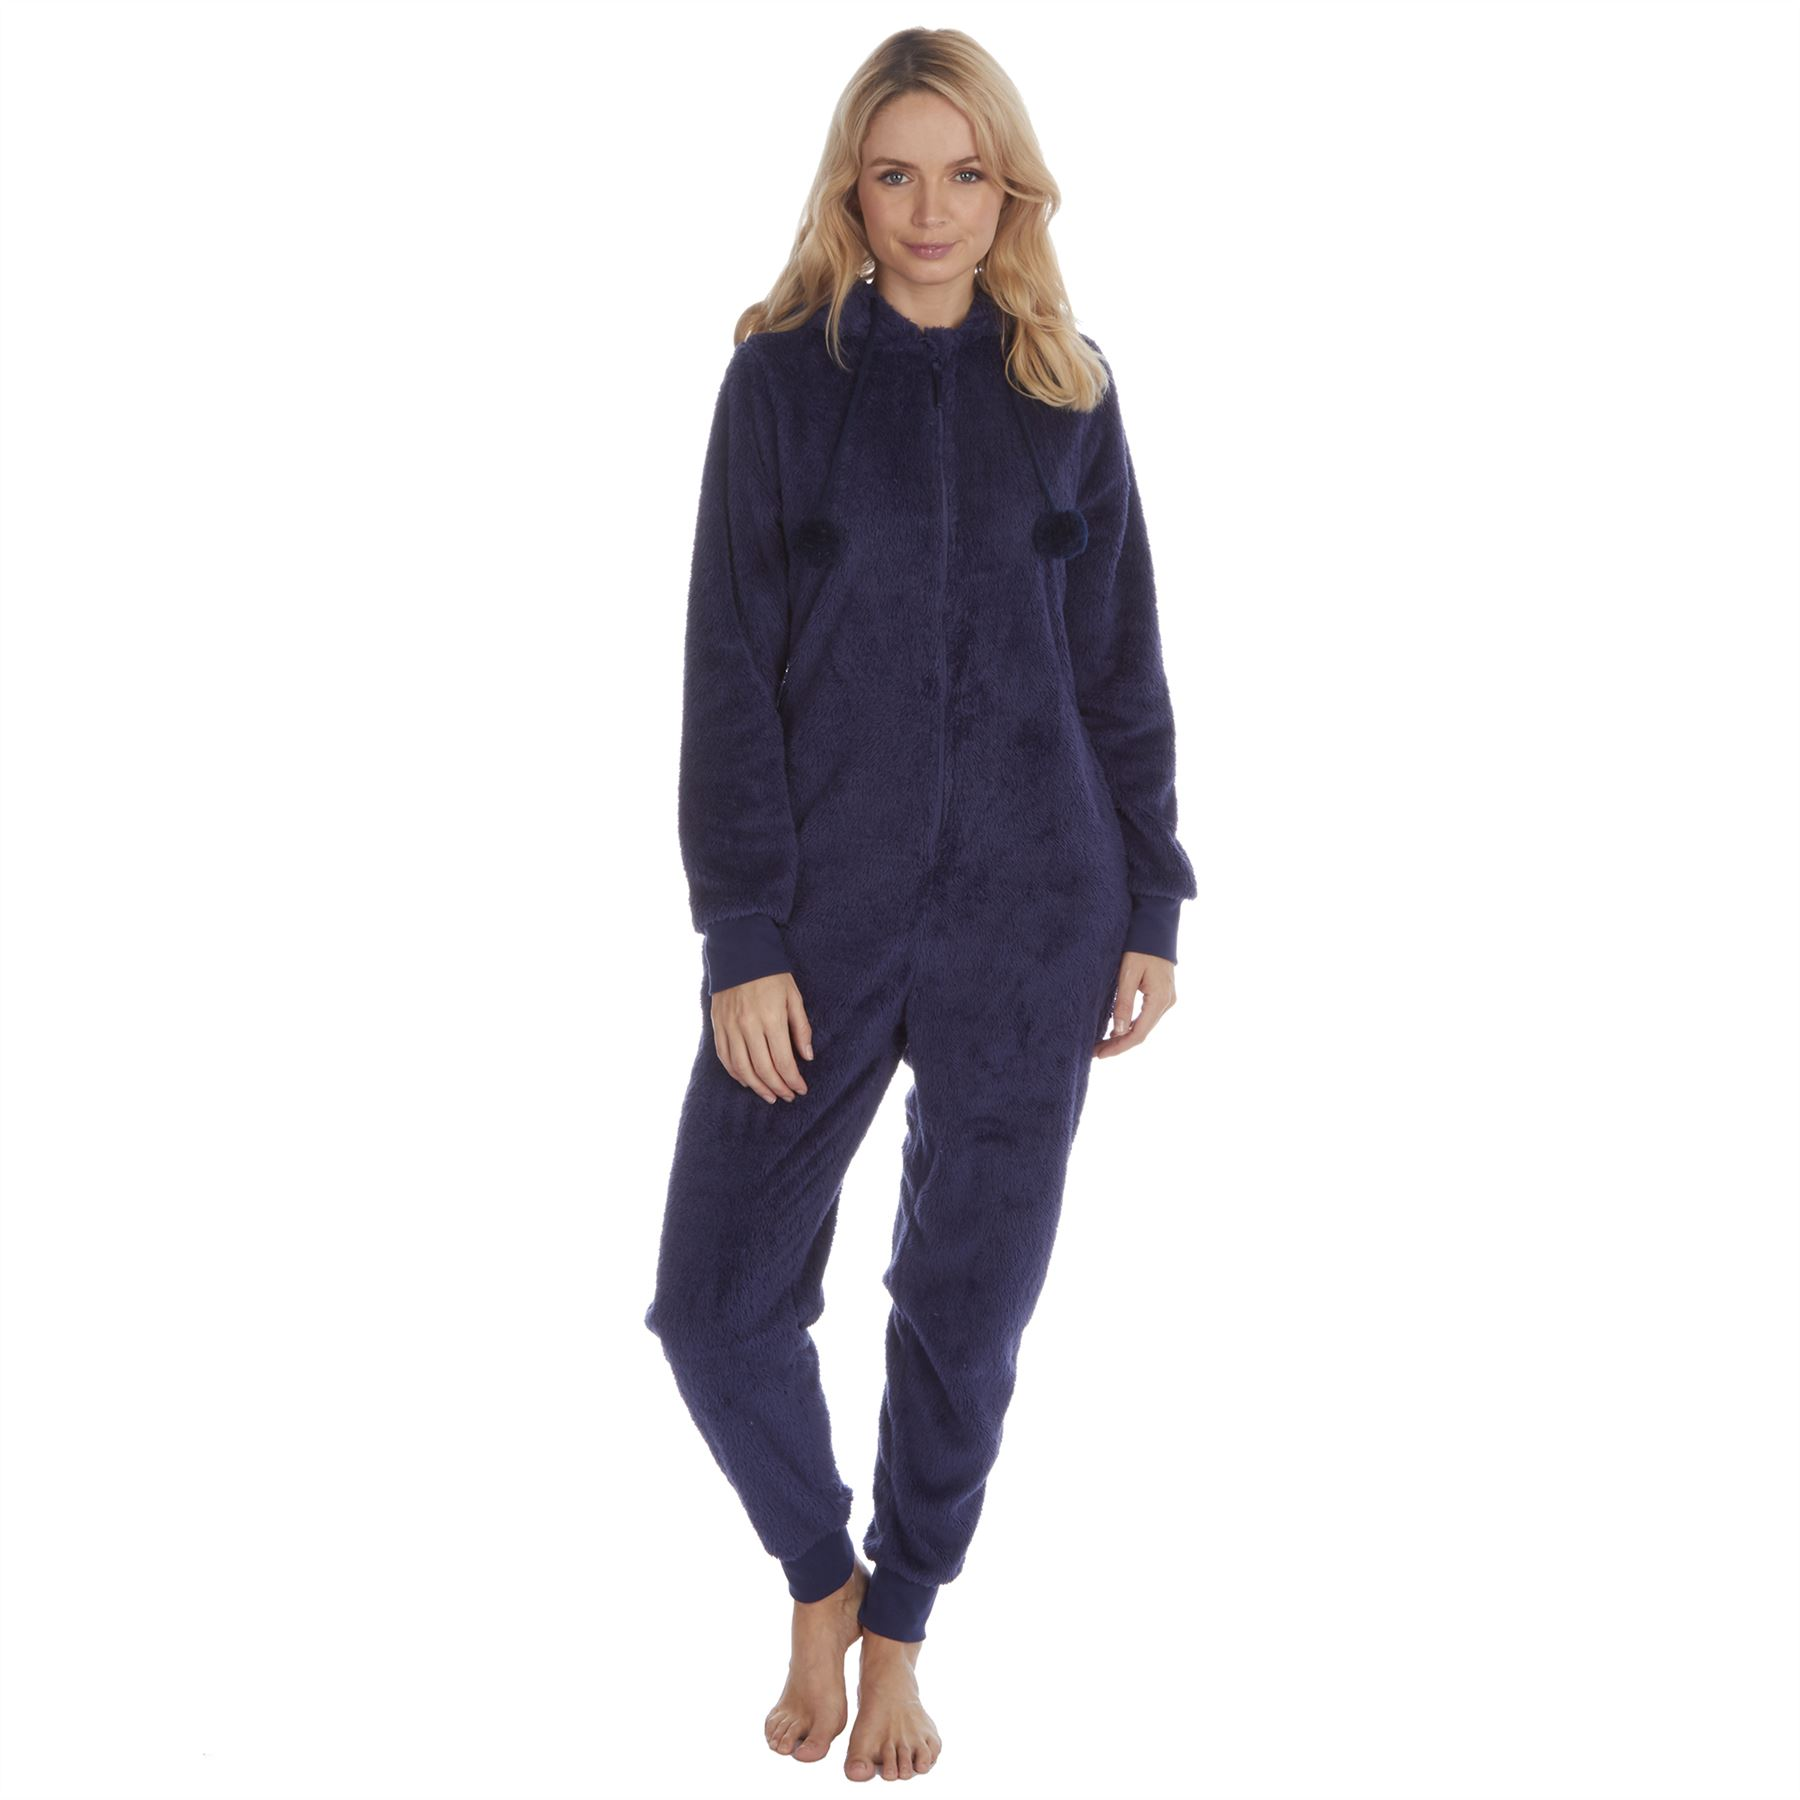 Ladies-Womens-Girls-Fleece-All-In-One-Pyjamas-Outfit-Jumpsuit-Costume-Size-6-18 thumbnail 67